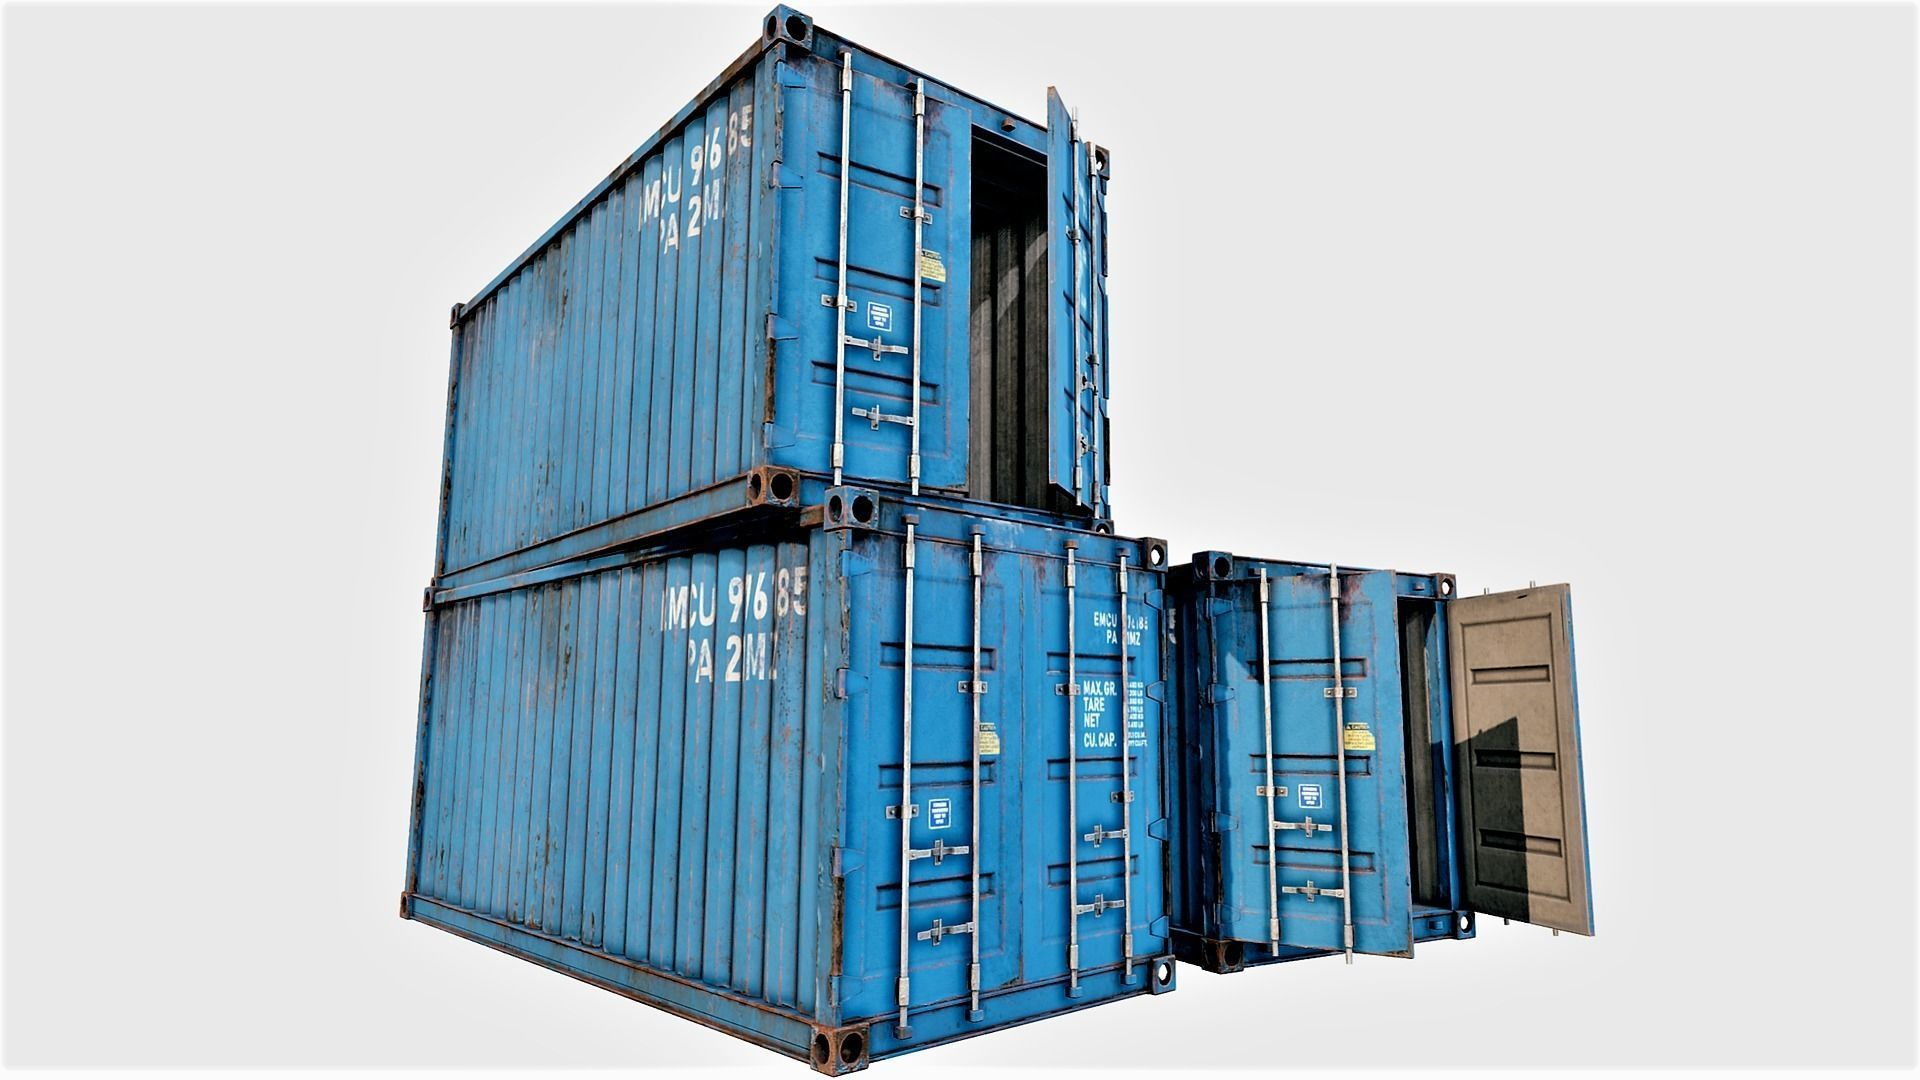 Enterable Shipping Container 03 - PBR